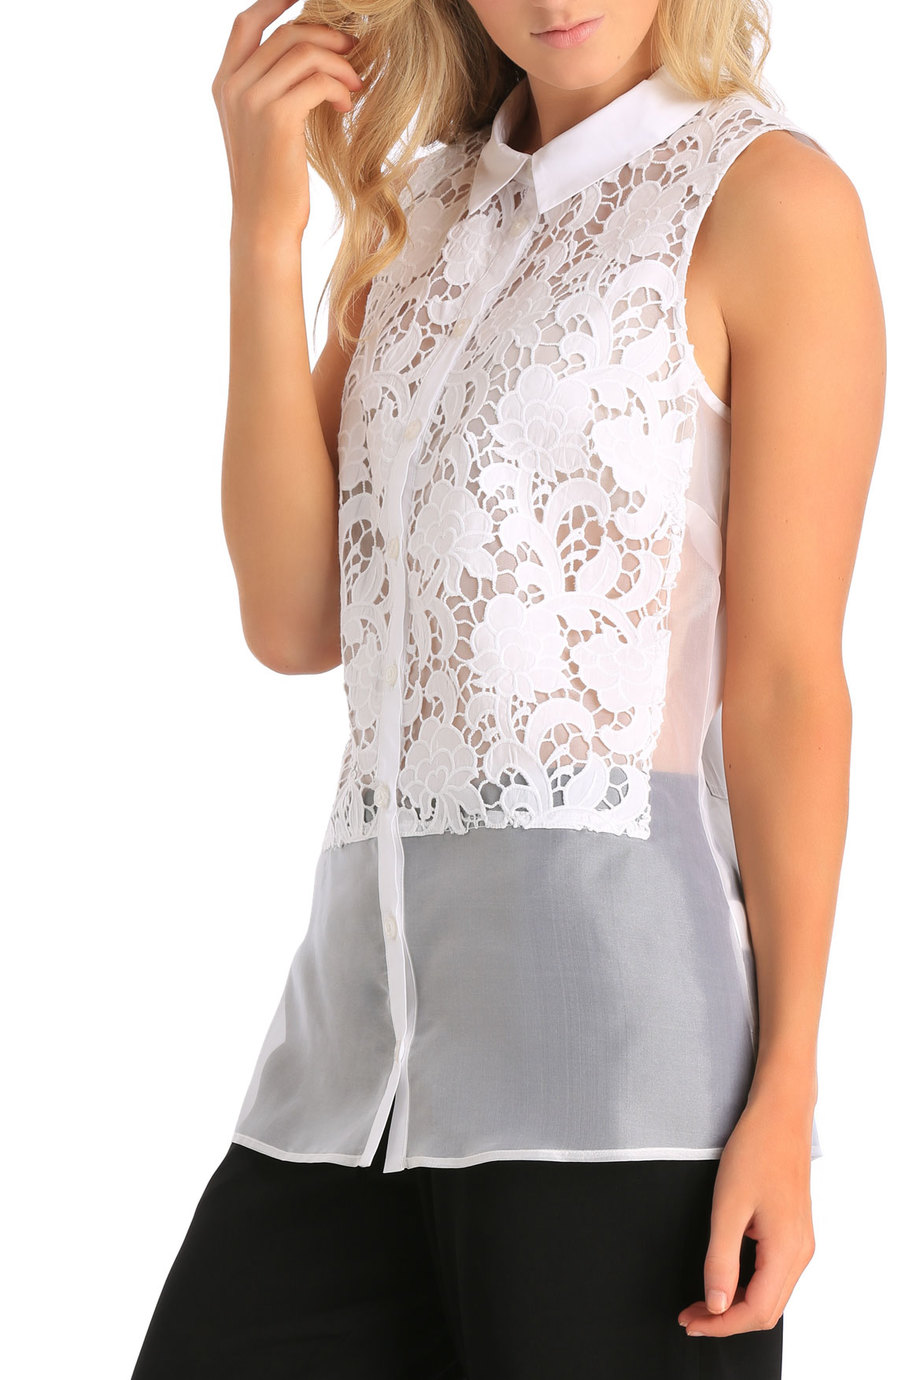 Trent Nathan lace panel dress $129